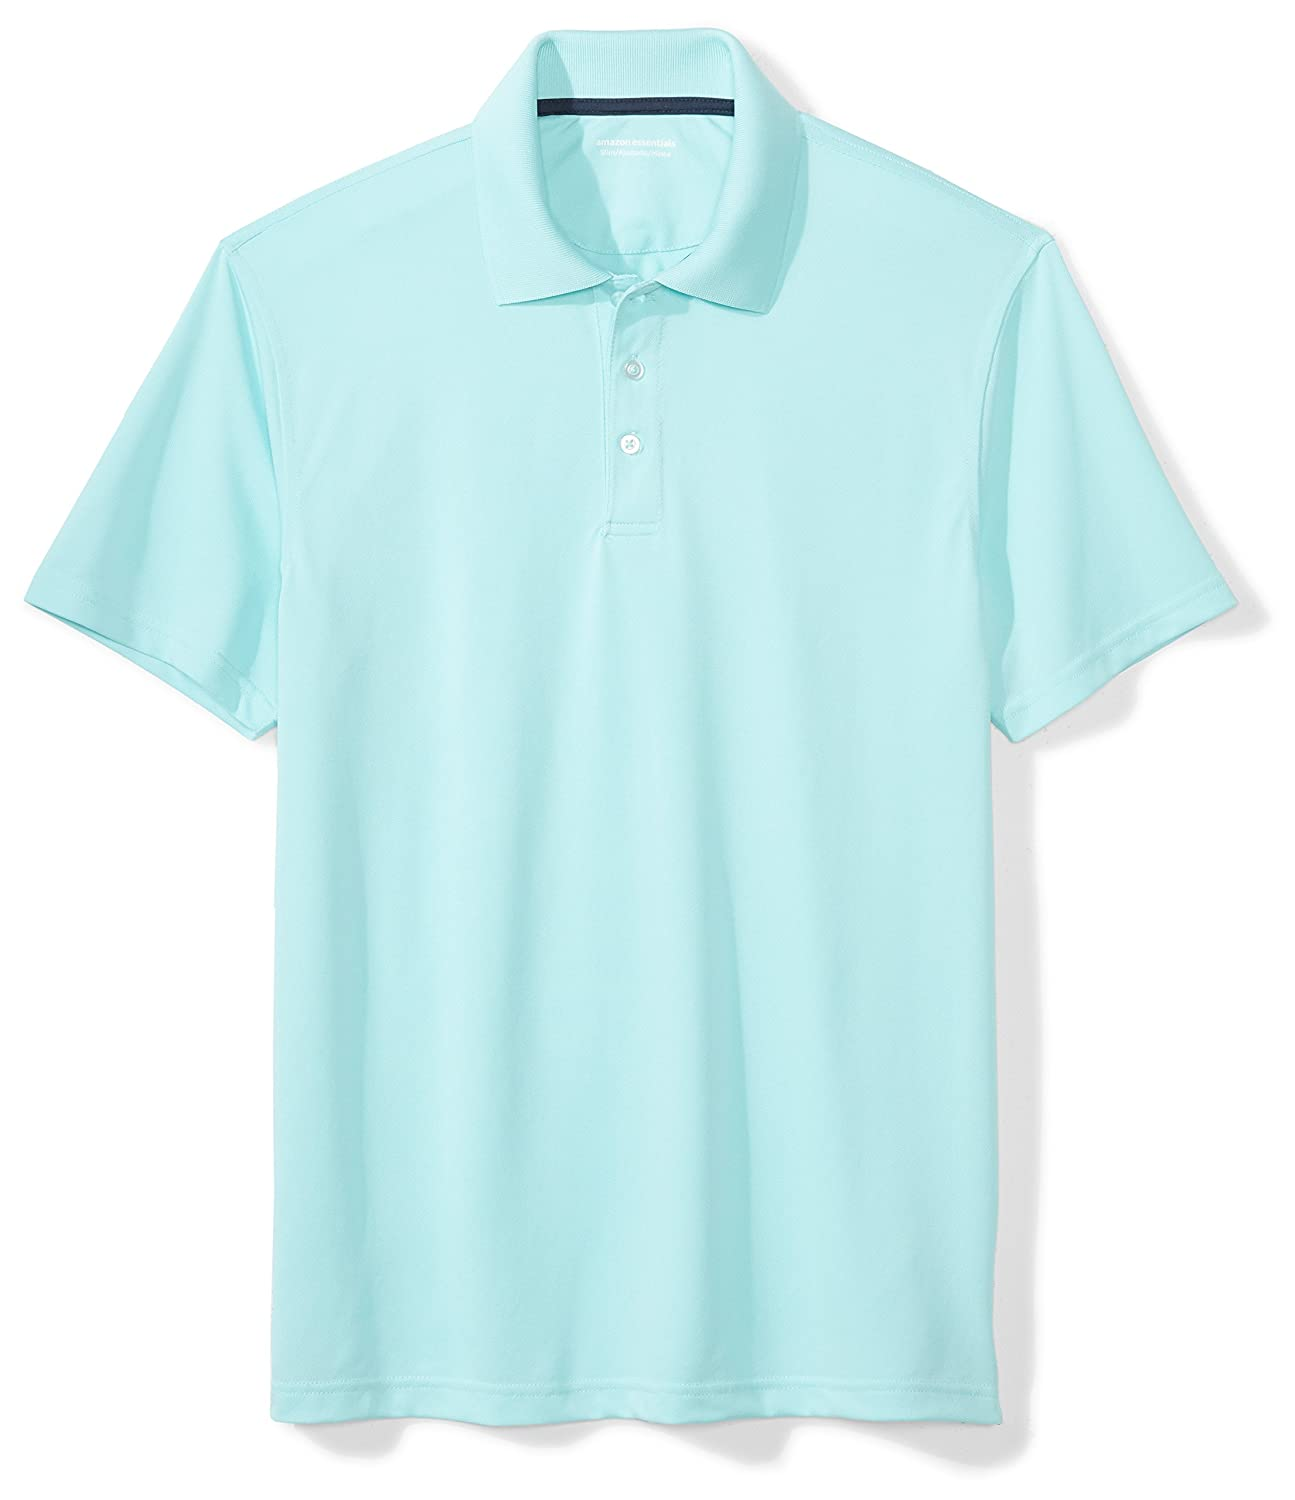 9d396af497 An Amazon brand - A slim fit makes this golf polo a go-to on or off the  links - if you enjoy Greg Norman or IZOD golf polos, we invite you to ...